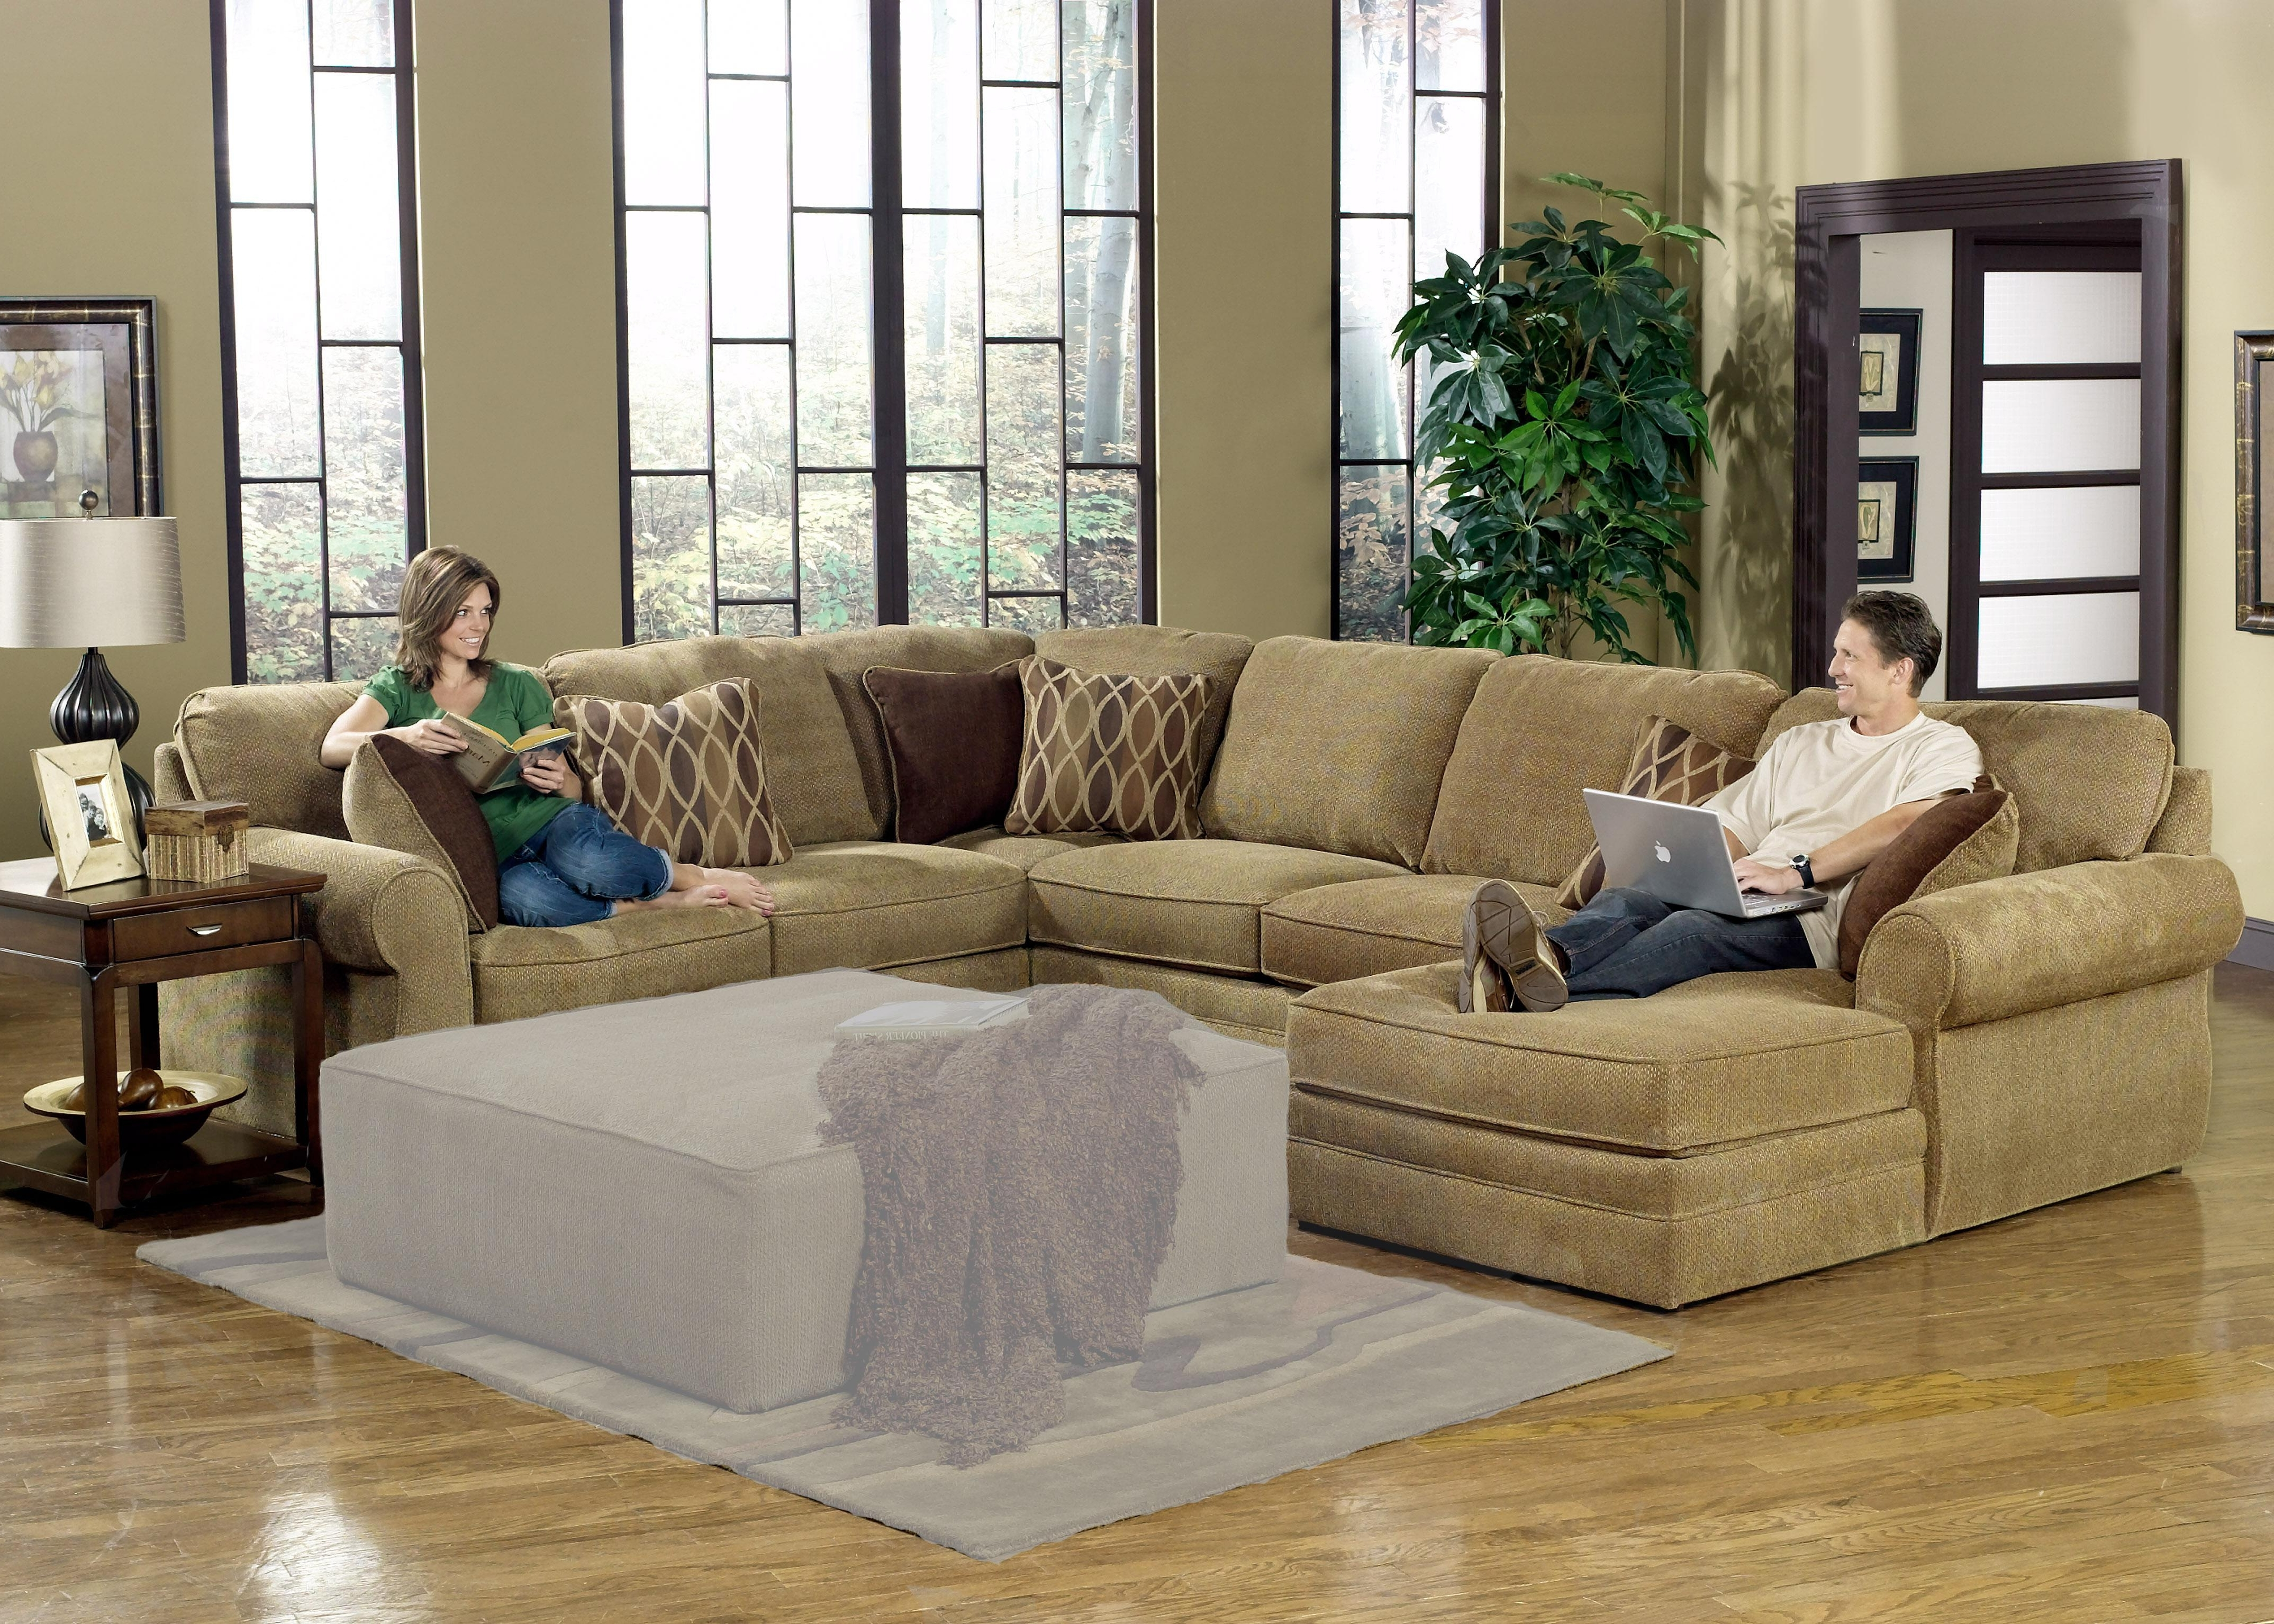 Sectional Sofa Design: Adorable Large U Shaped Sectional Sofa Big For Trendy U Shaped Sectional Sofas (View 10 of 20)